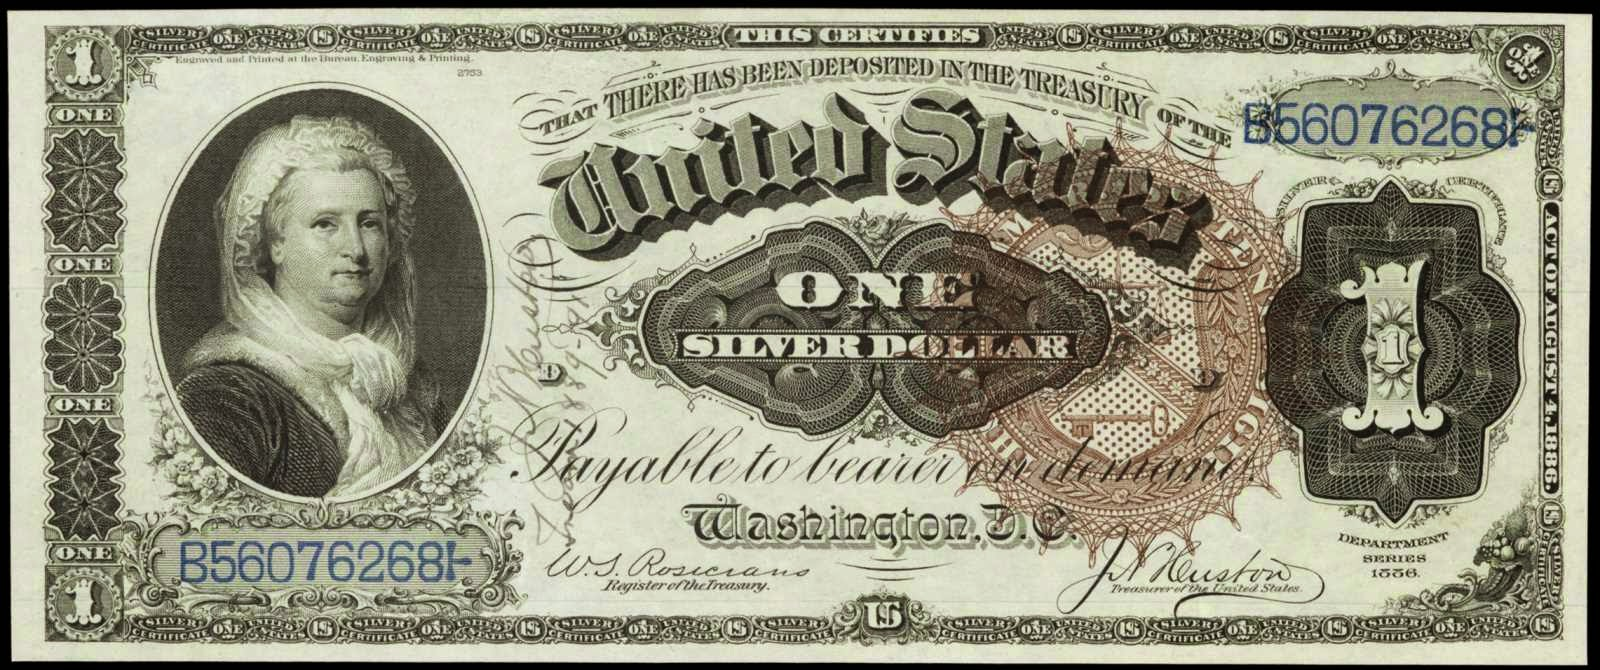 Paper Money of the United States: 1886 One Dollar Silver Certificate Martha Washington Note Autograph